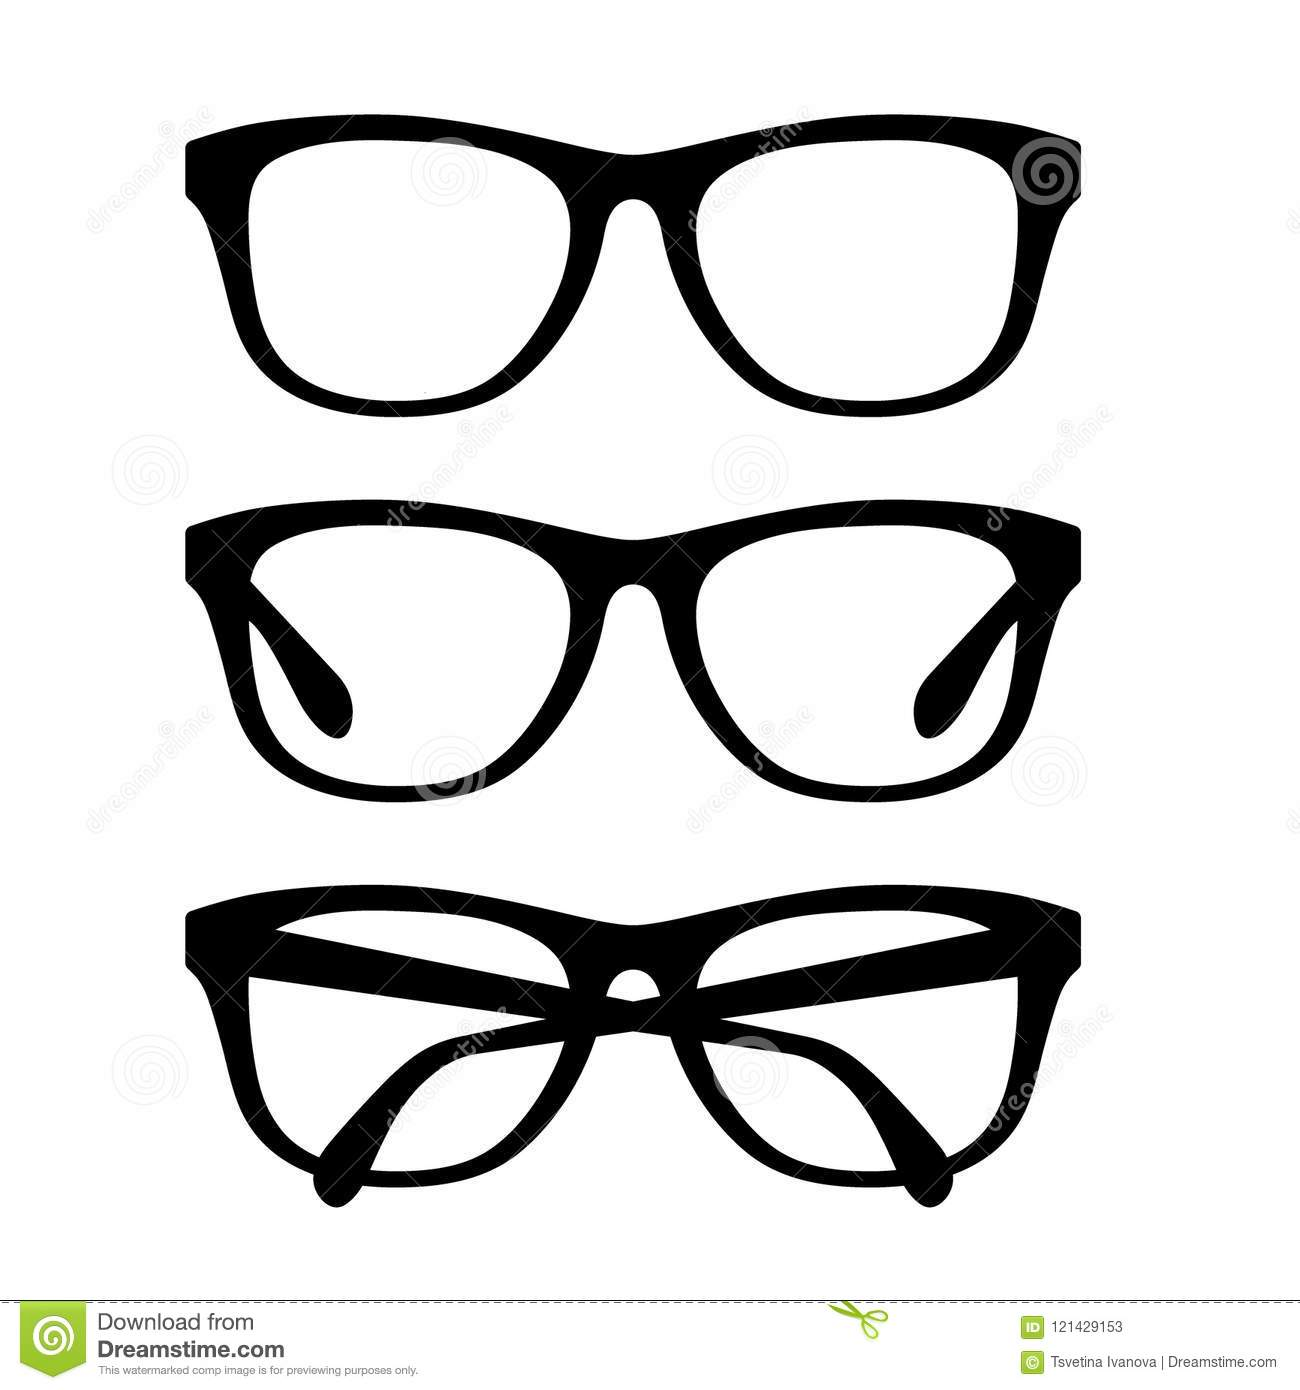 a01999f366 Black glasses set vector retro eyeglasses frames set stock vector jpg  1300x1390 Glasses frames vector